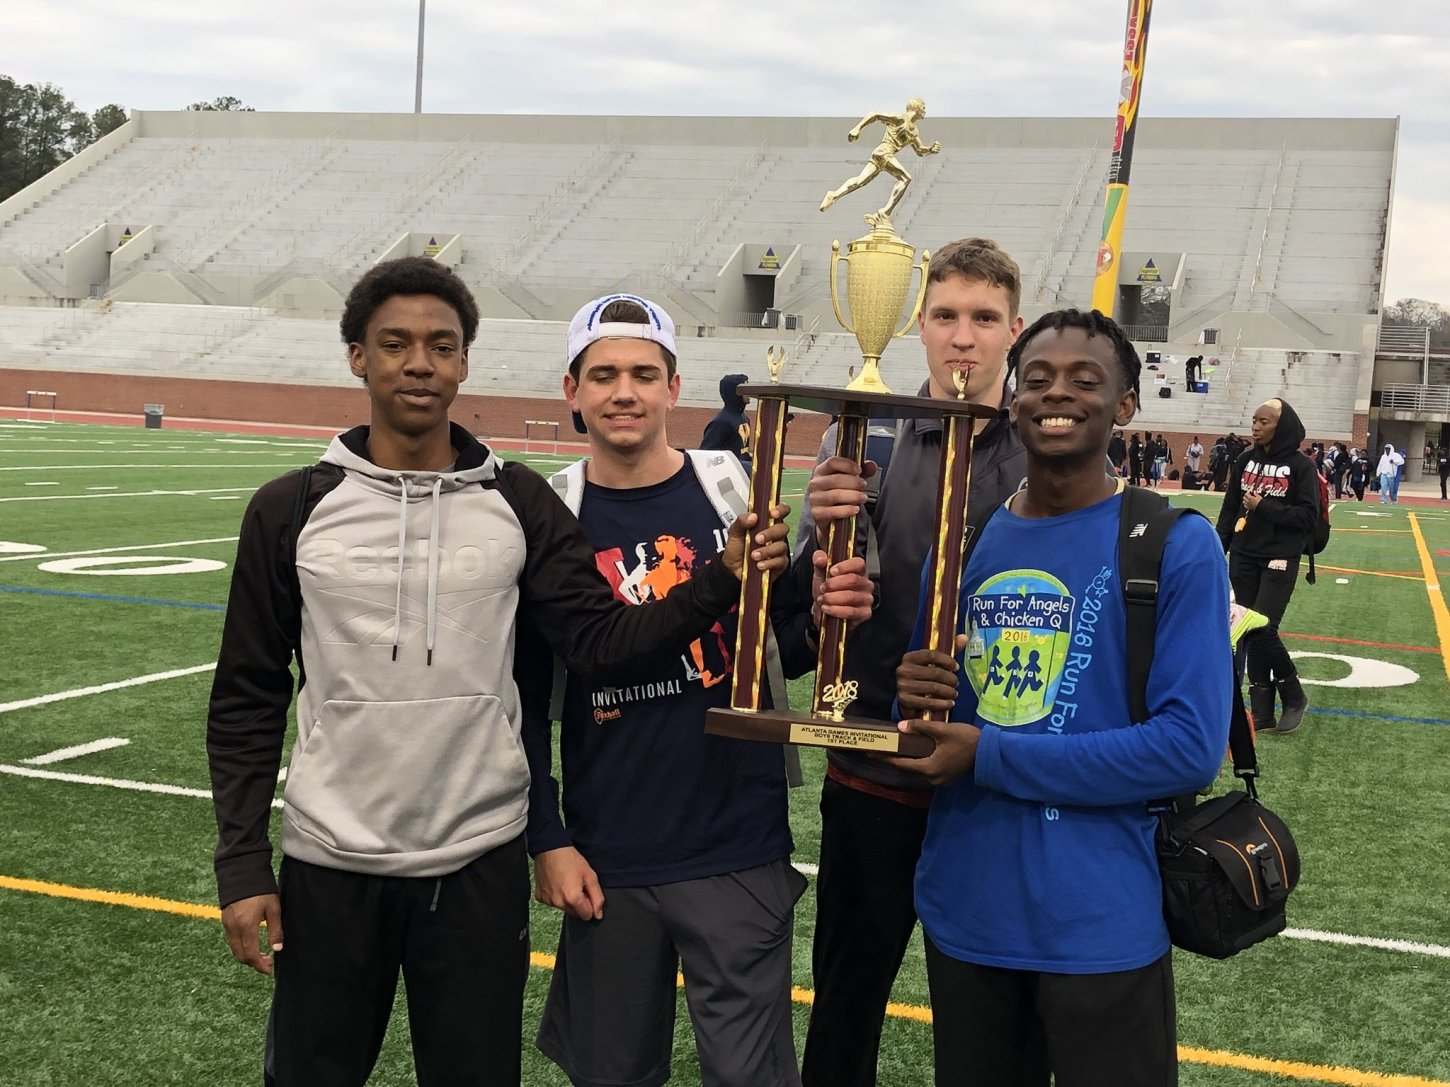 East Coweta's boys track team finished first at the Atlanta Games among 24 schools.